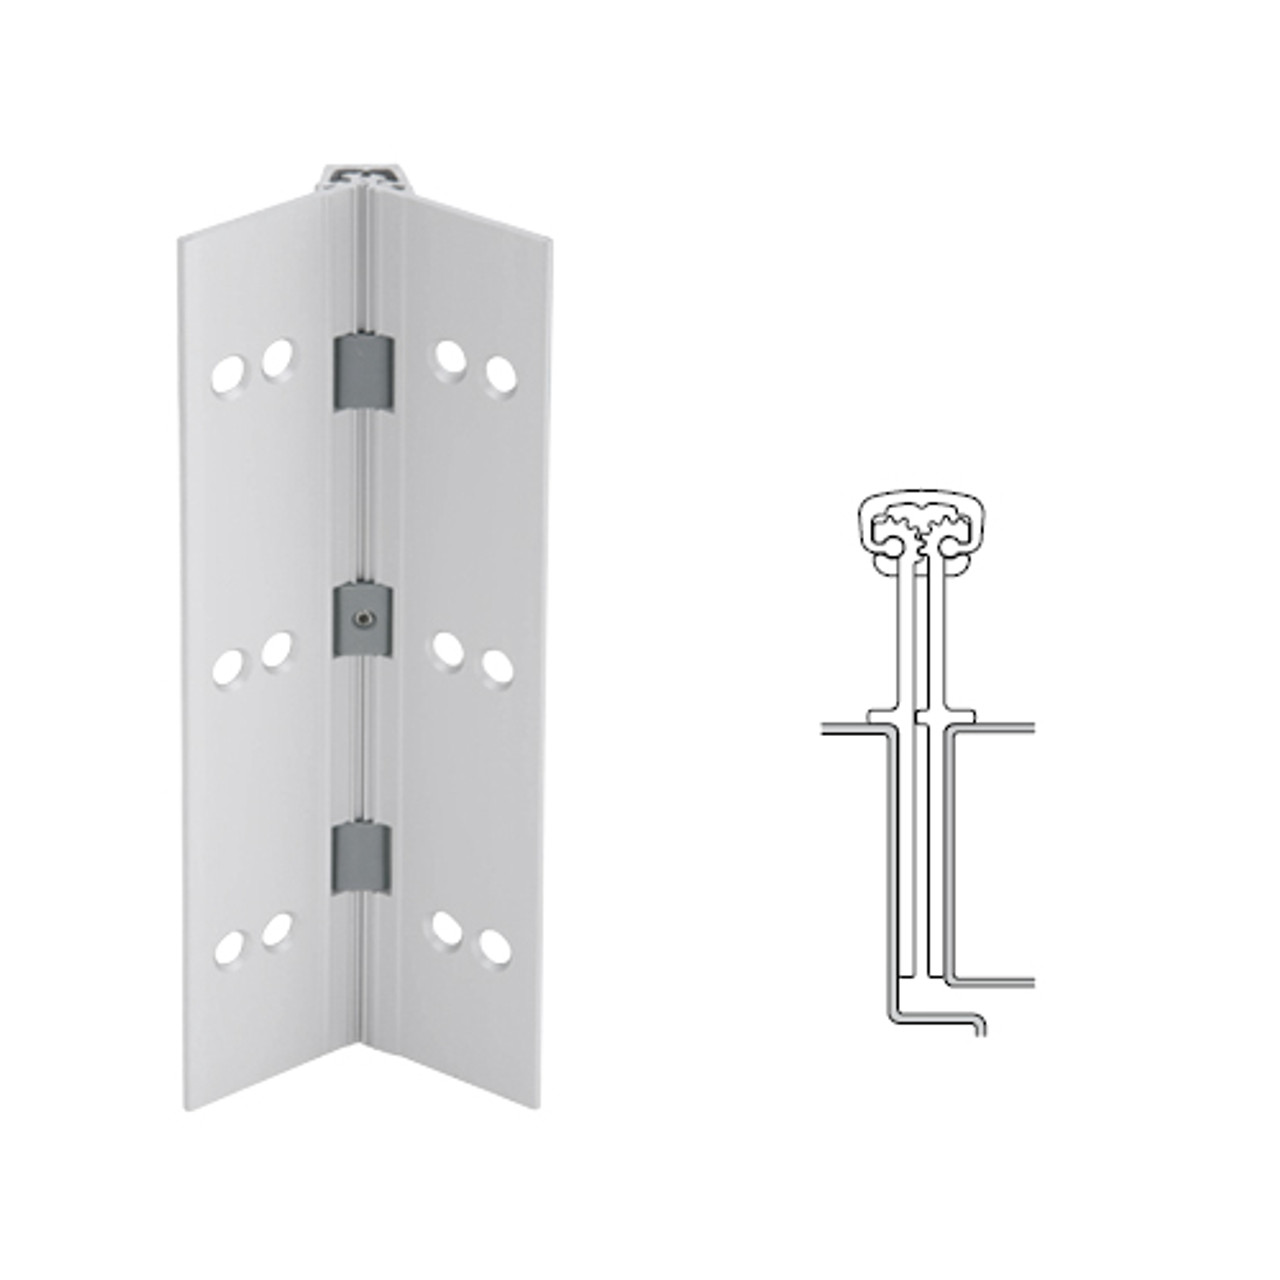 040XY-US28-85 IVES Full Mortise Continuous Geared Hinges in Satin Aluminum